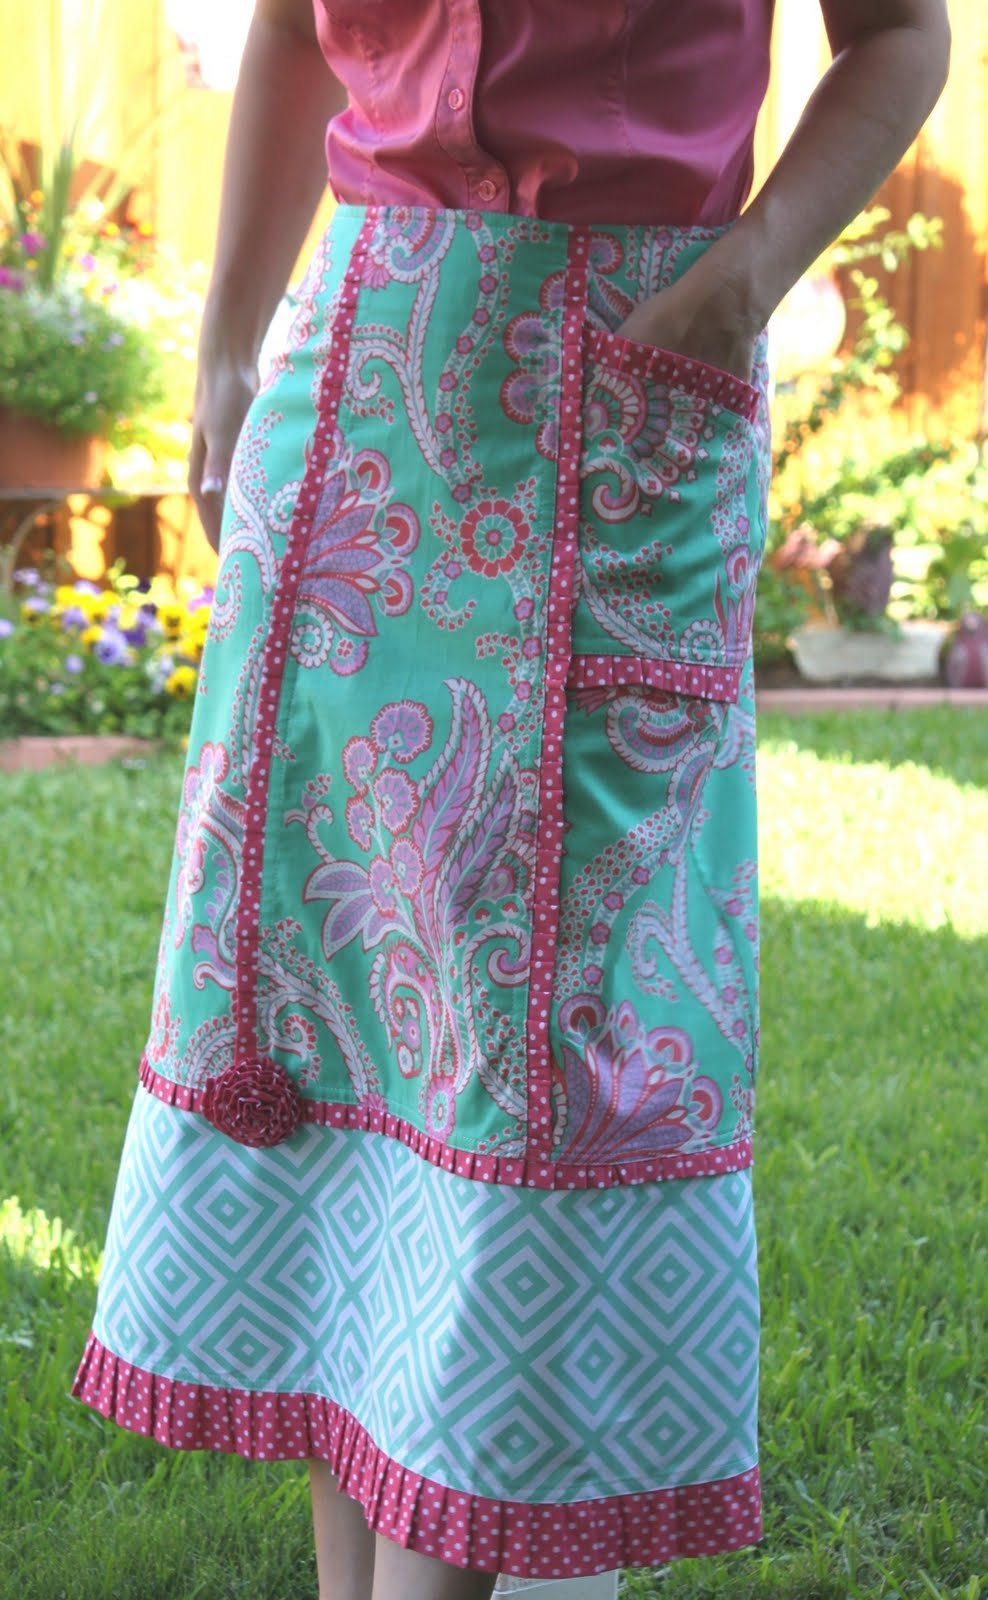 Sew Serendipity: Summer of No Pants: A Skirt Tutorial from Sew ...